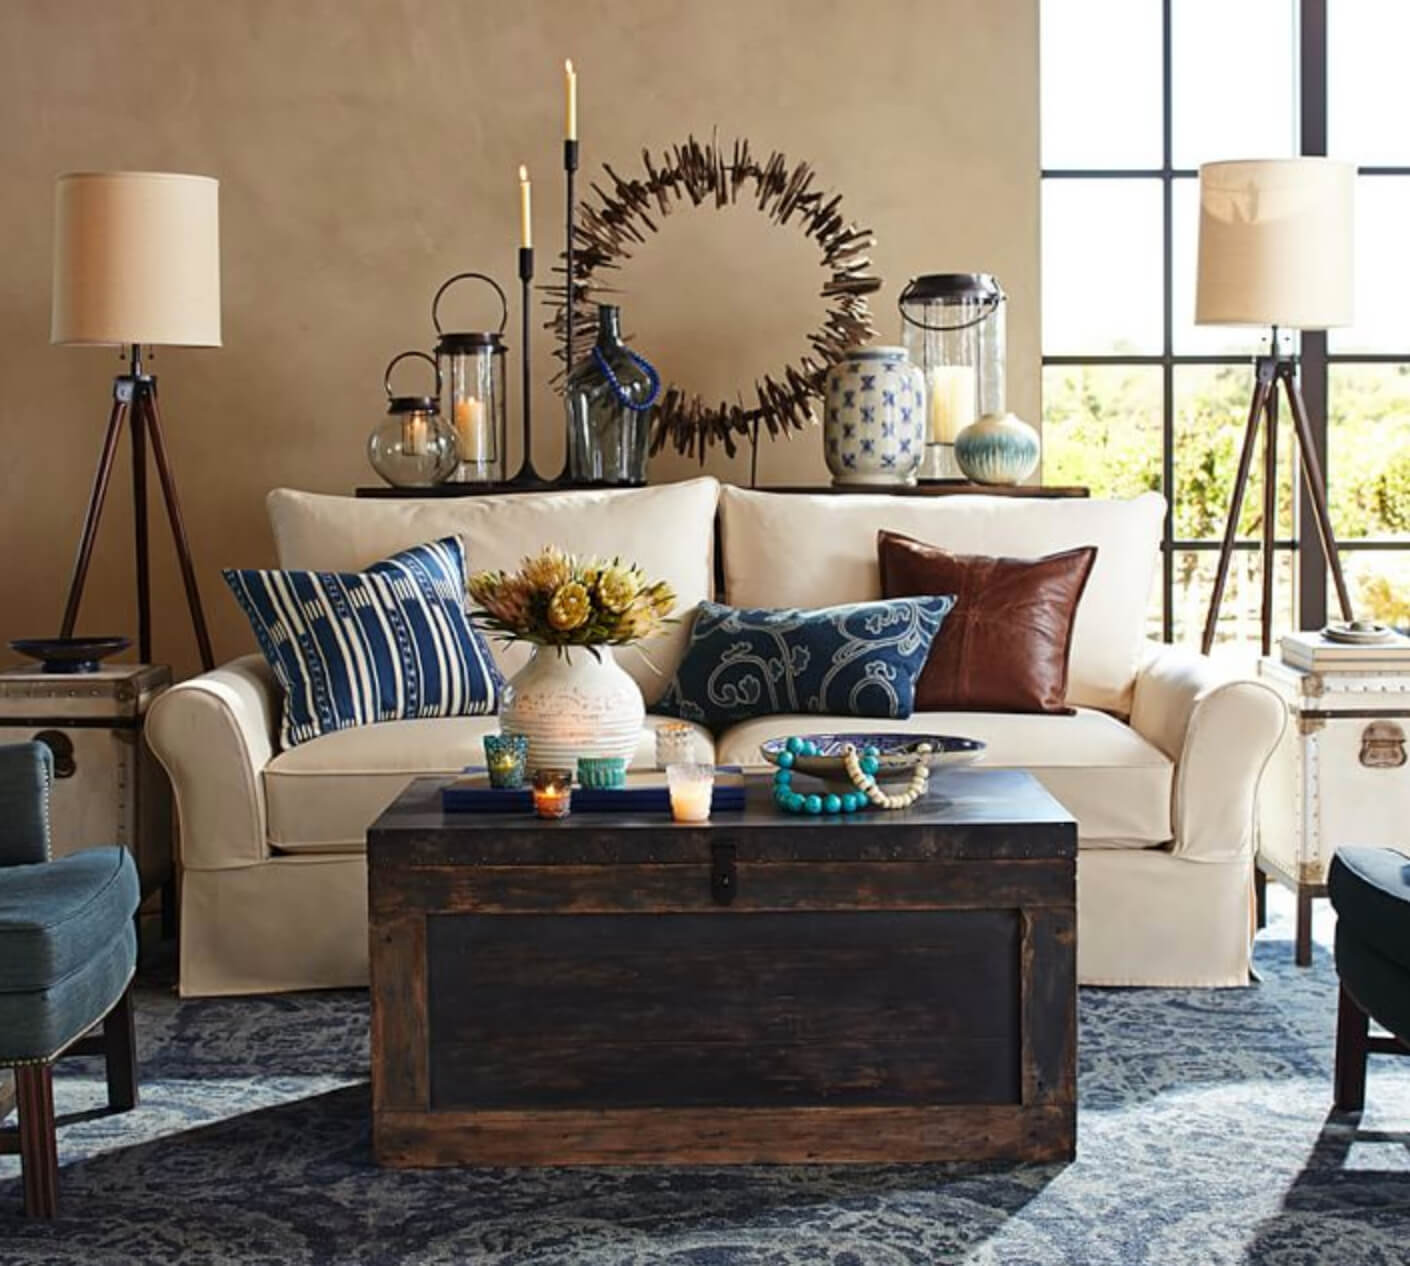 Pottery Barn Blue Living Room: 12 Living Room Rug Ideas That Will Change Everything